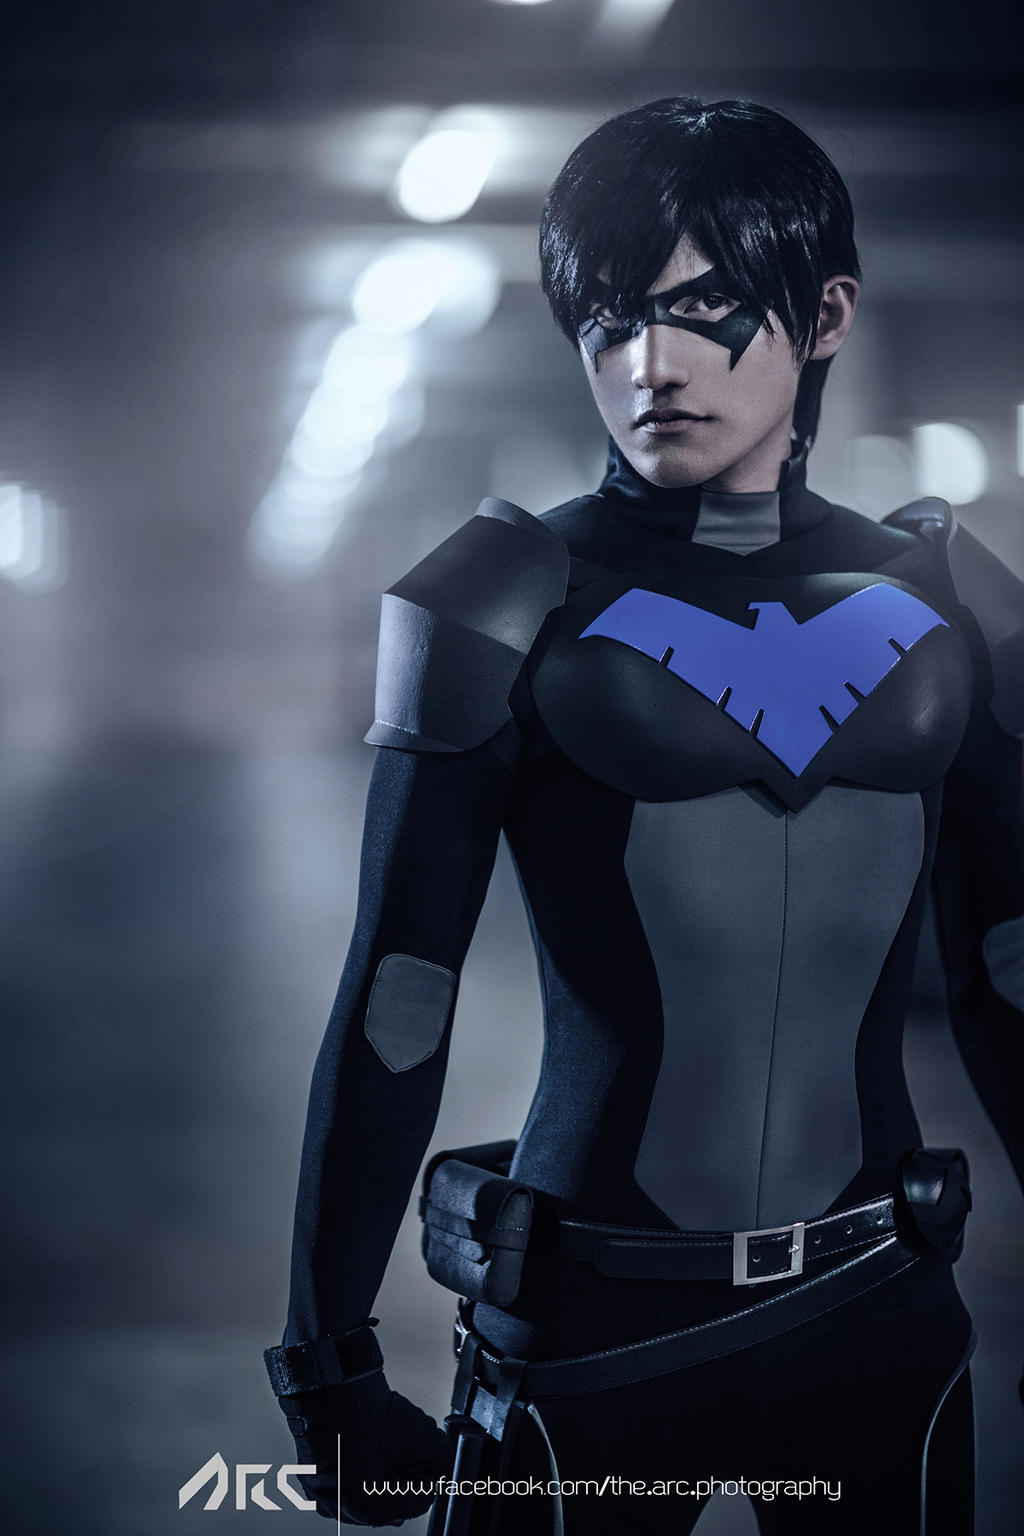 Nightwing young justice cosplay by liui by liui aquino on deviantart - Pictures of nightwing from young justice ...